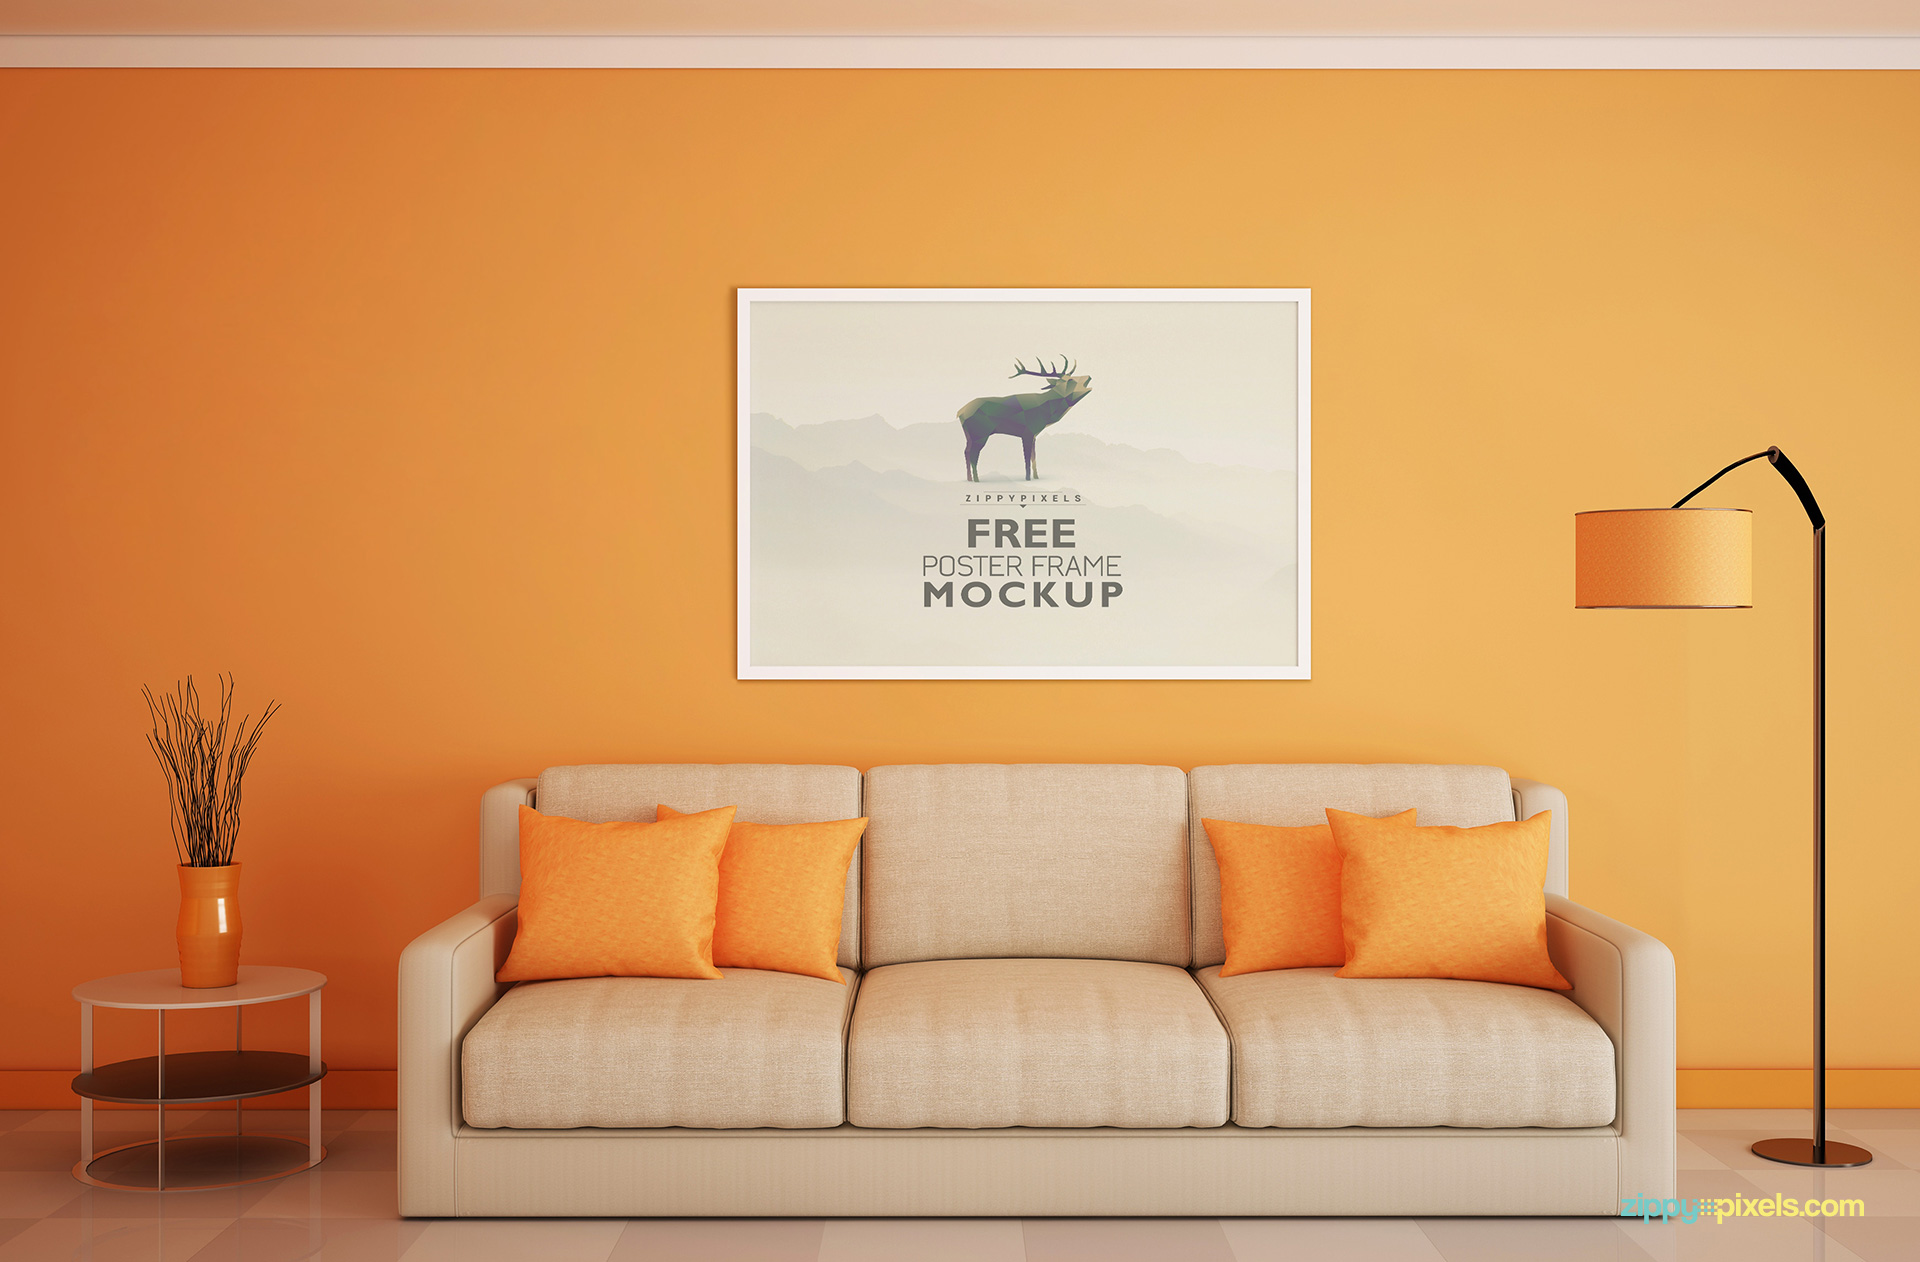 download free frame mockup for poster display zippypixels